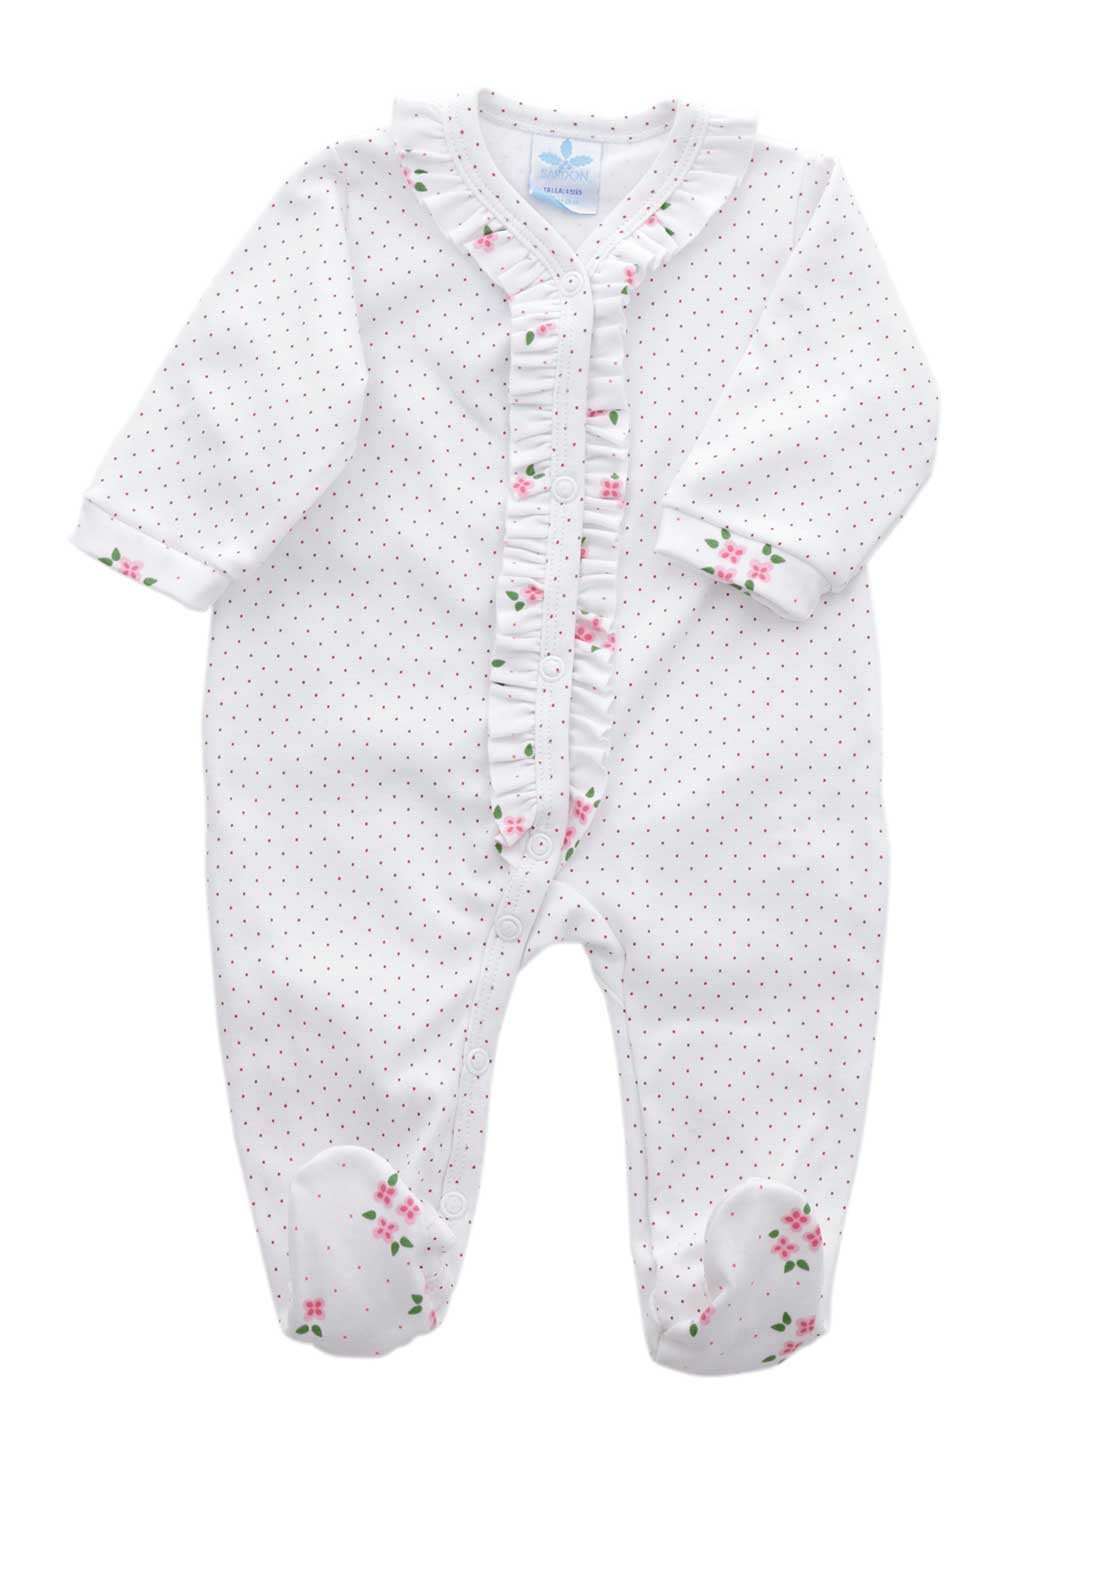 Sardon Baby Girls Polka Dot Boxed All in One Grow, White